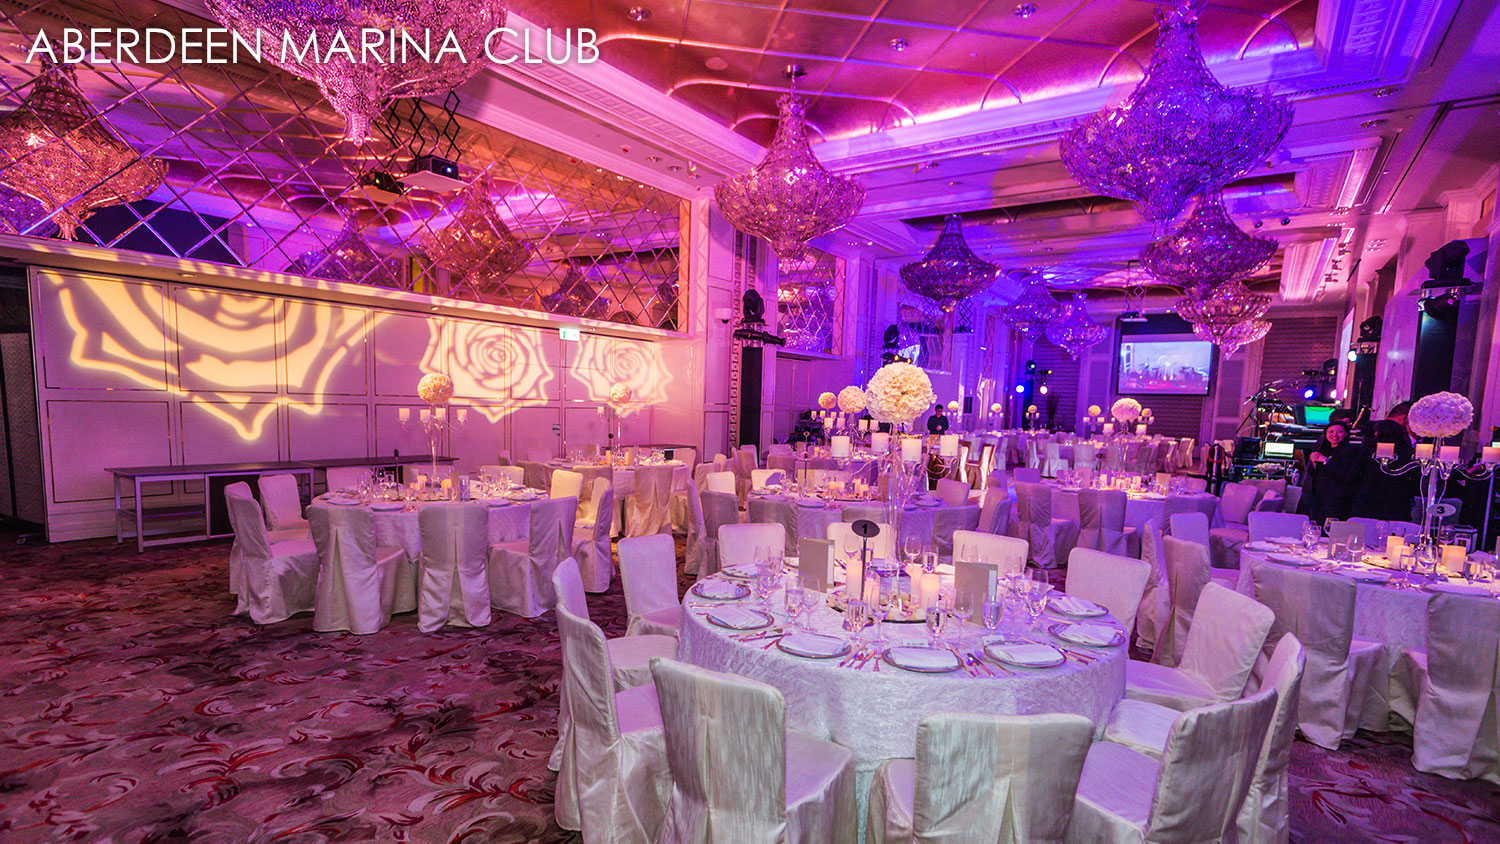 We provide LED lighting rental services and comprehensive audio-visual rental services for events in Hong Kong. We own and offer a full suite of audio-visual equipment for hire including audio equipment, LED lighting, video projection, LED walls and the professional technicians to operate it to perfection.